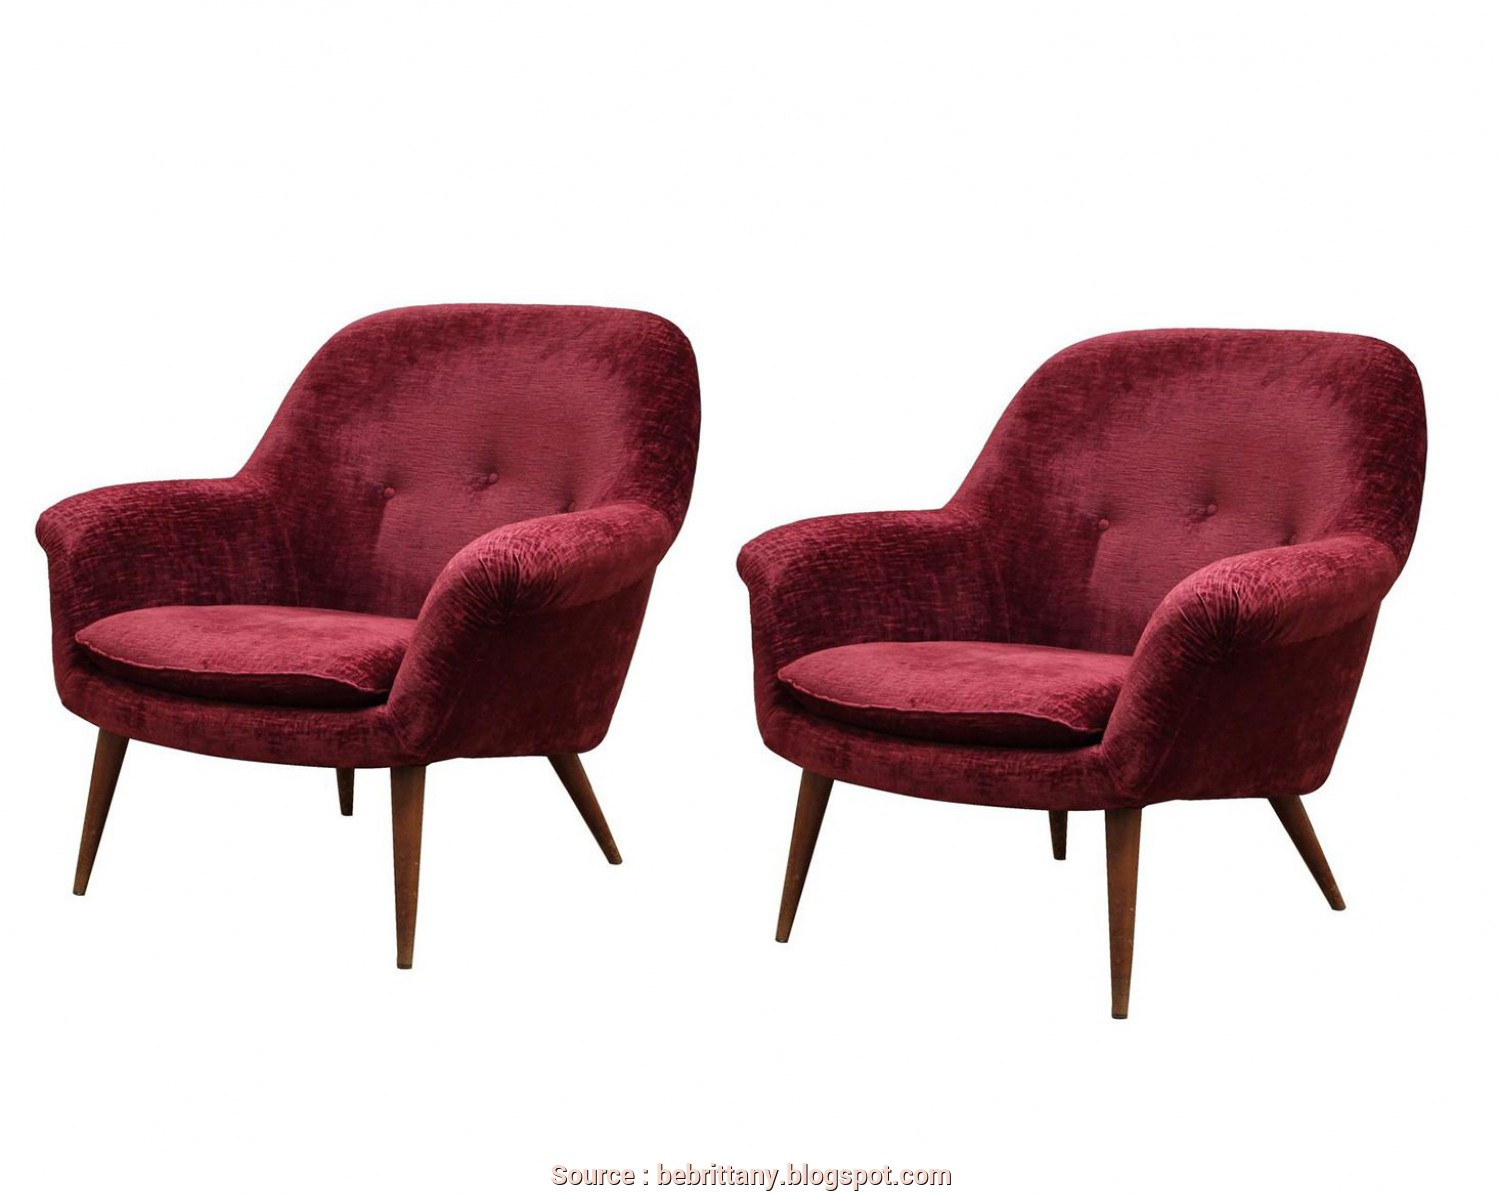 Divano Letto Toronto Maison Du Monde, Eccezionale Italian Burgundy Armchairs 1950S, Of 2, Sale At Pamono With 1950S Armchairs, Sale